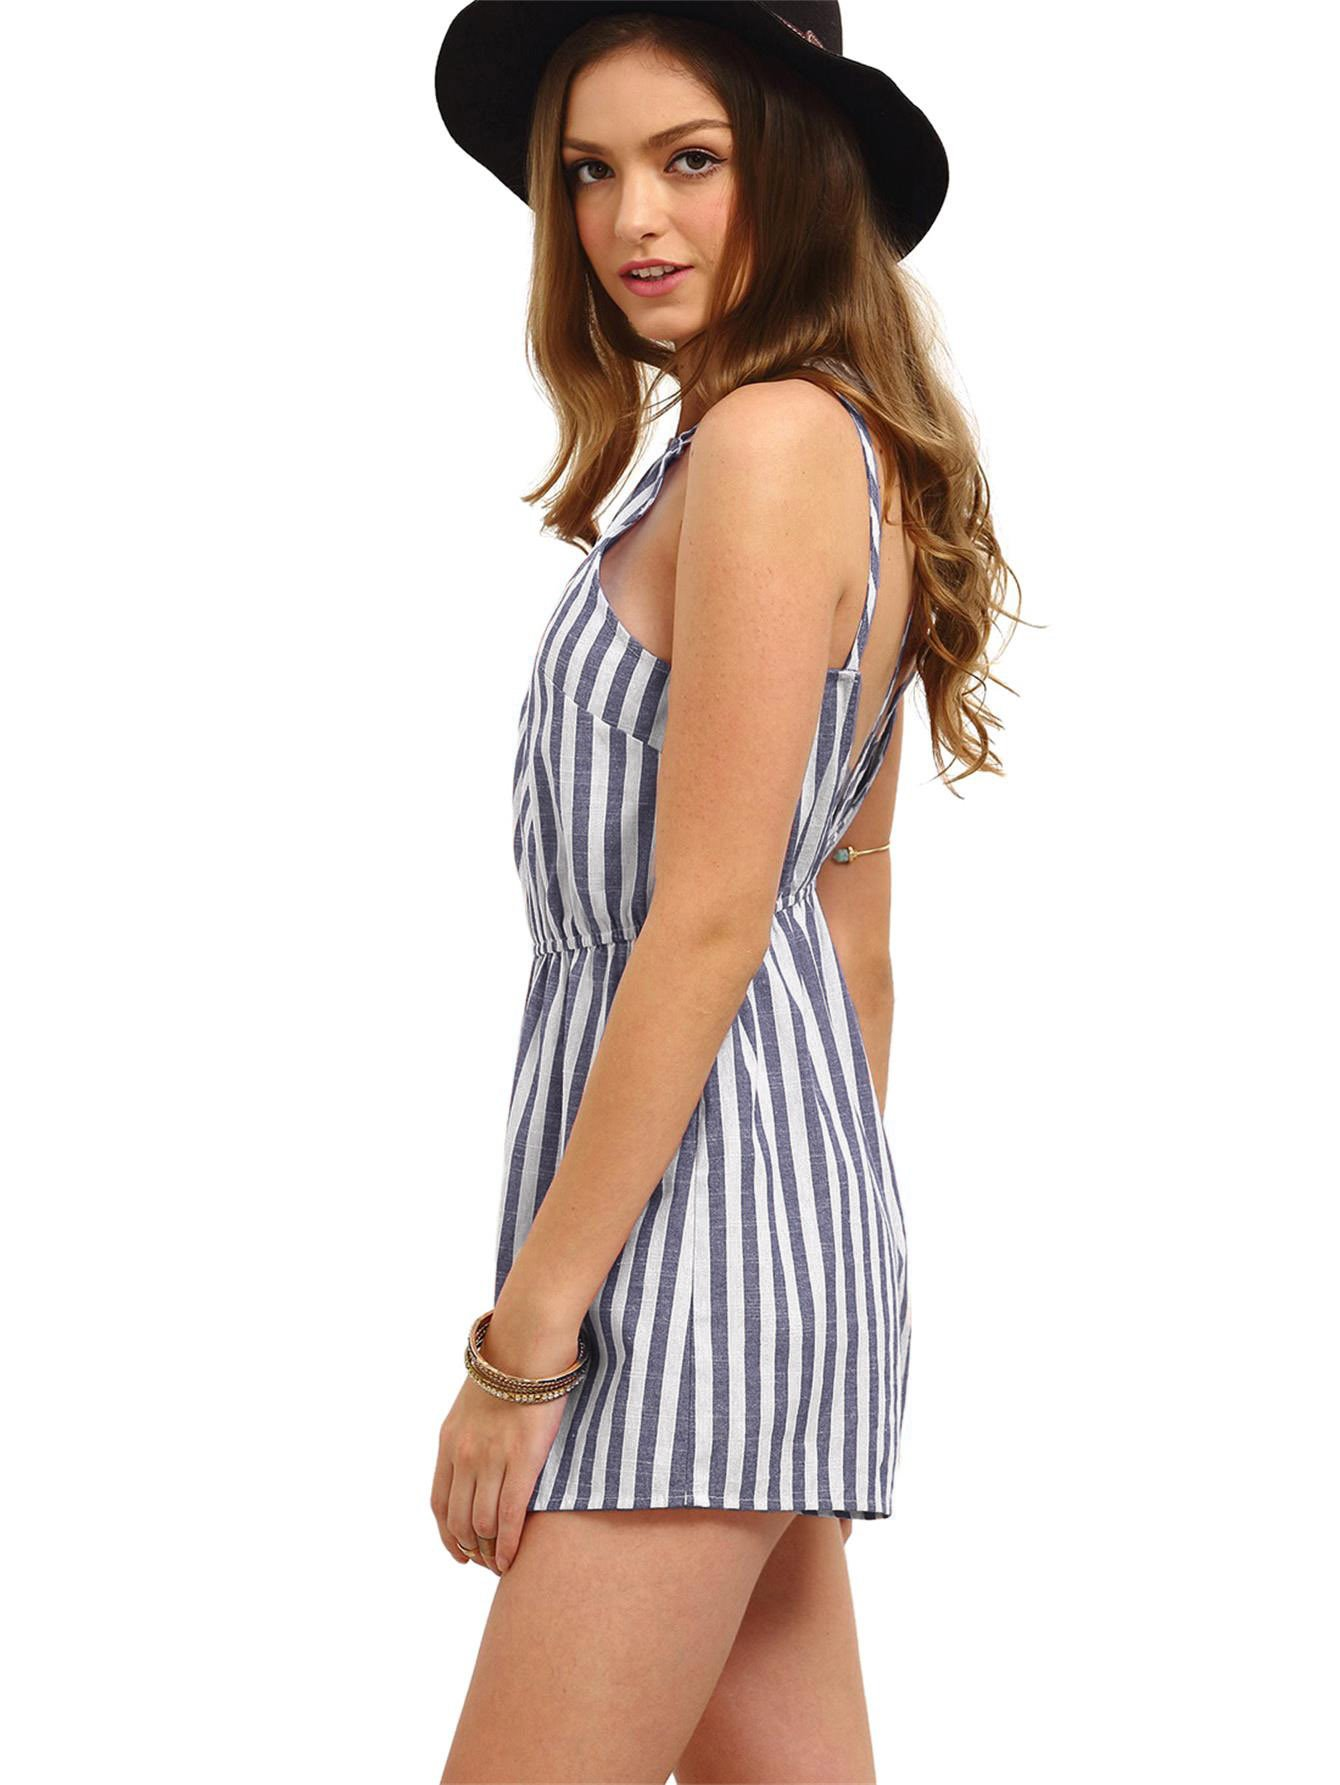 Romwe Women's Casual Striped Sleeveless Halter Sexy Short Romper Jumpsuit Navy XS by Romwe (Image #2)